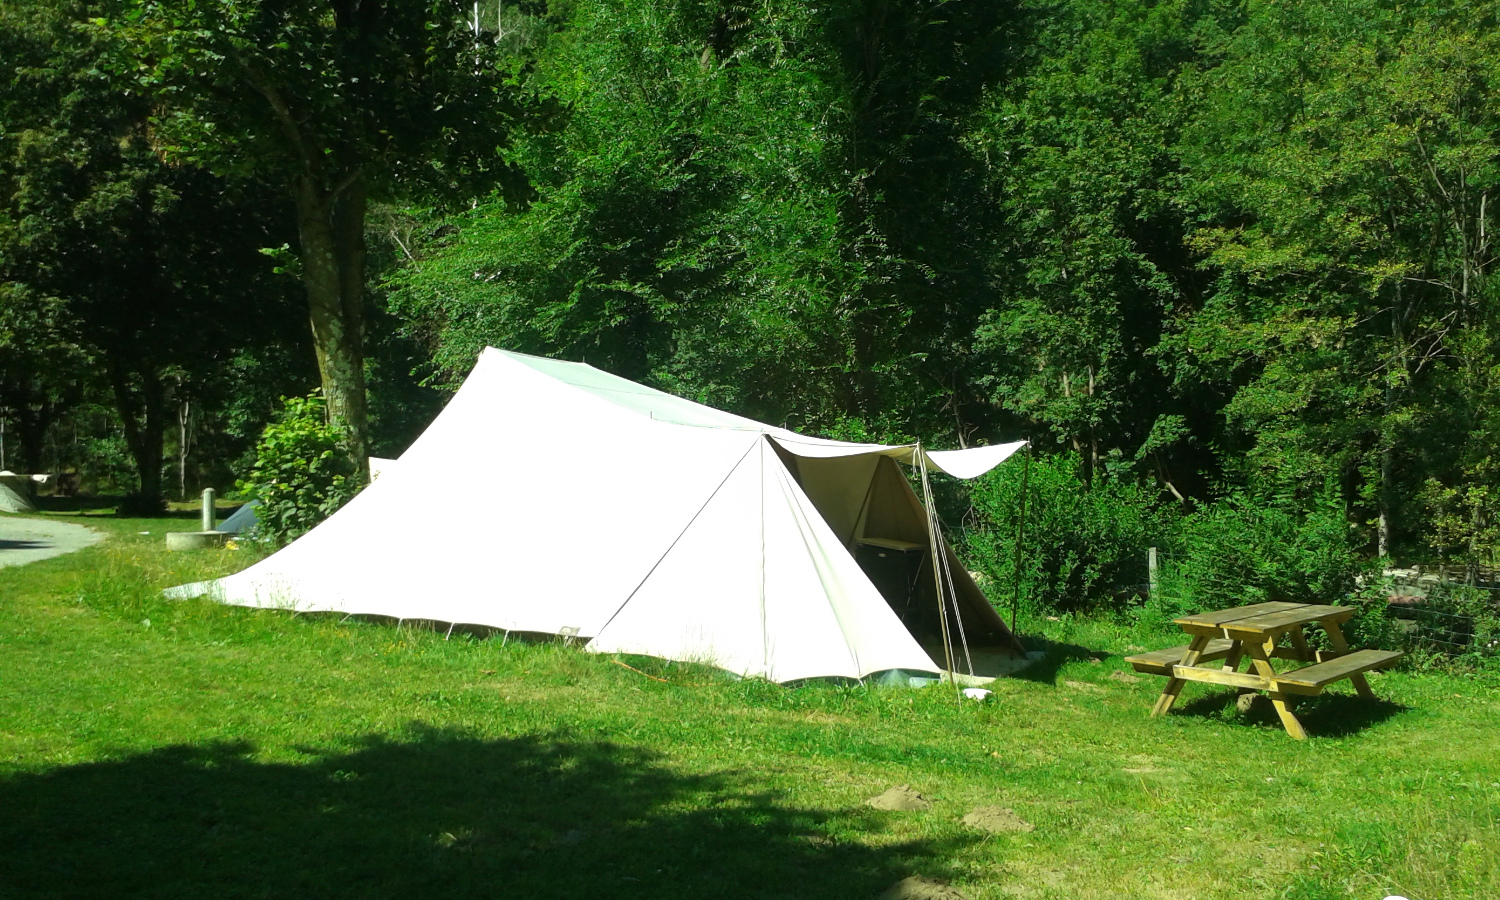 Accommodation - Tent De Waard 15M² Albatros - Camping municipal le Pré Coulet